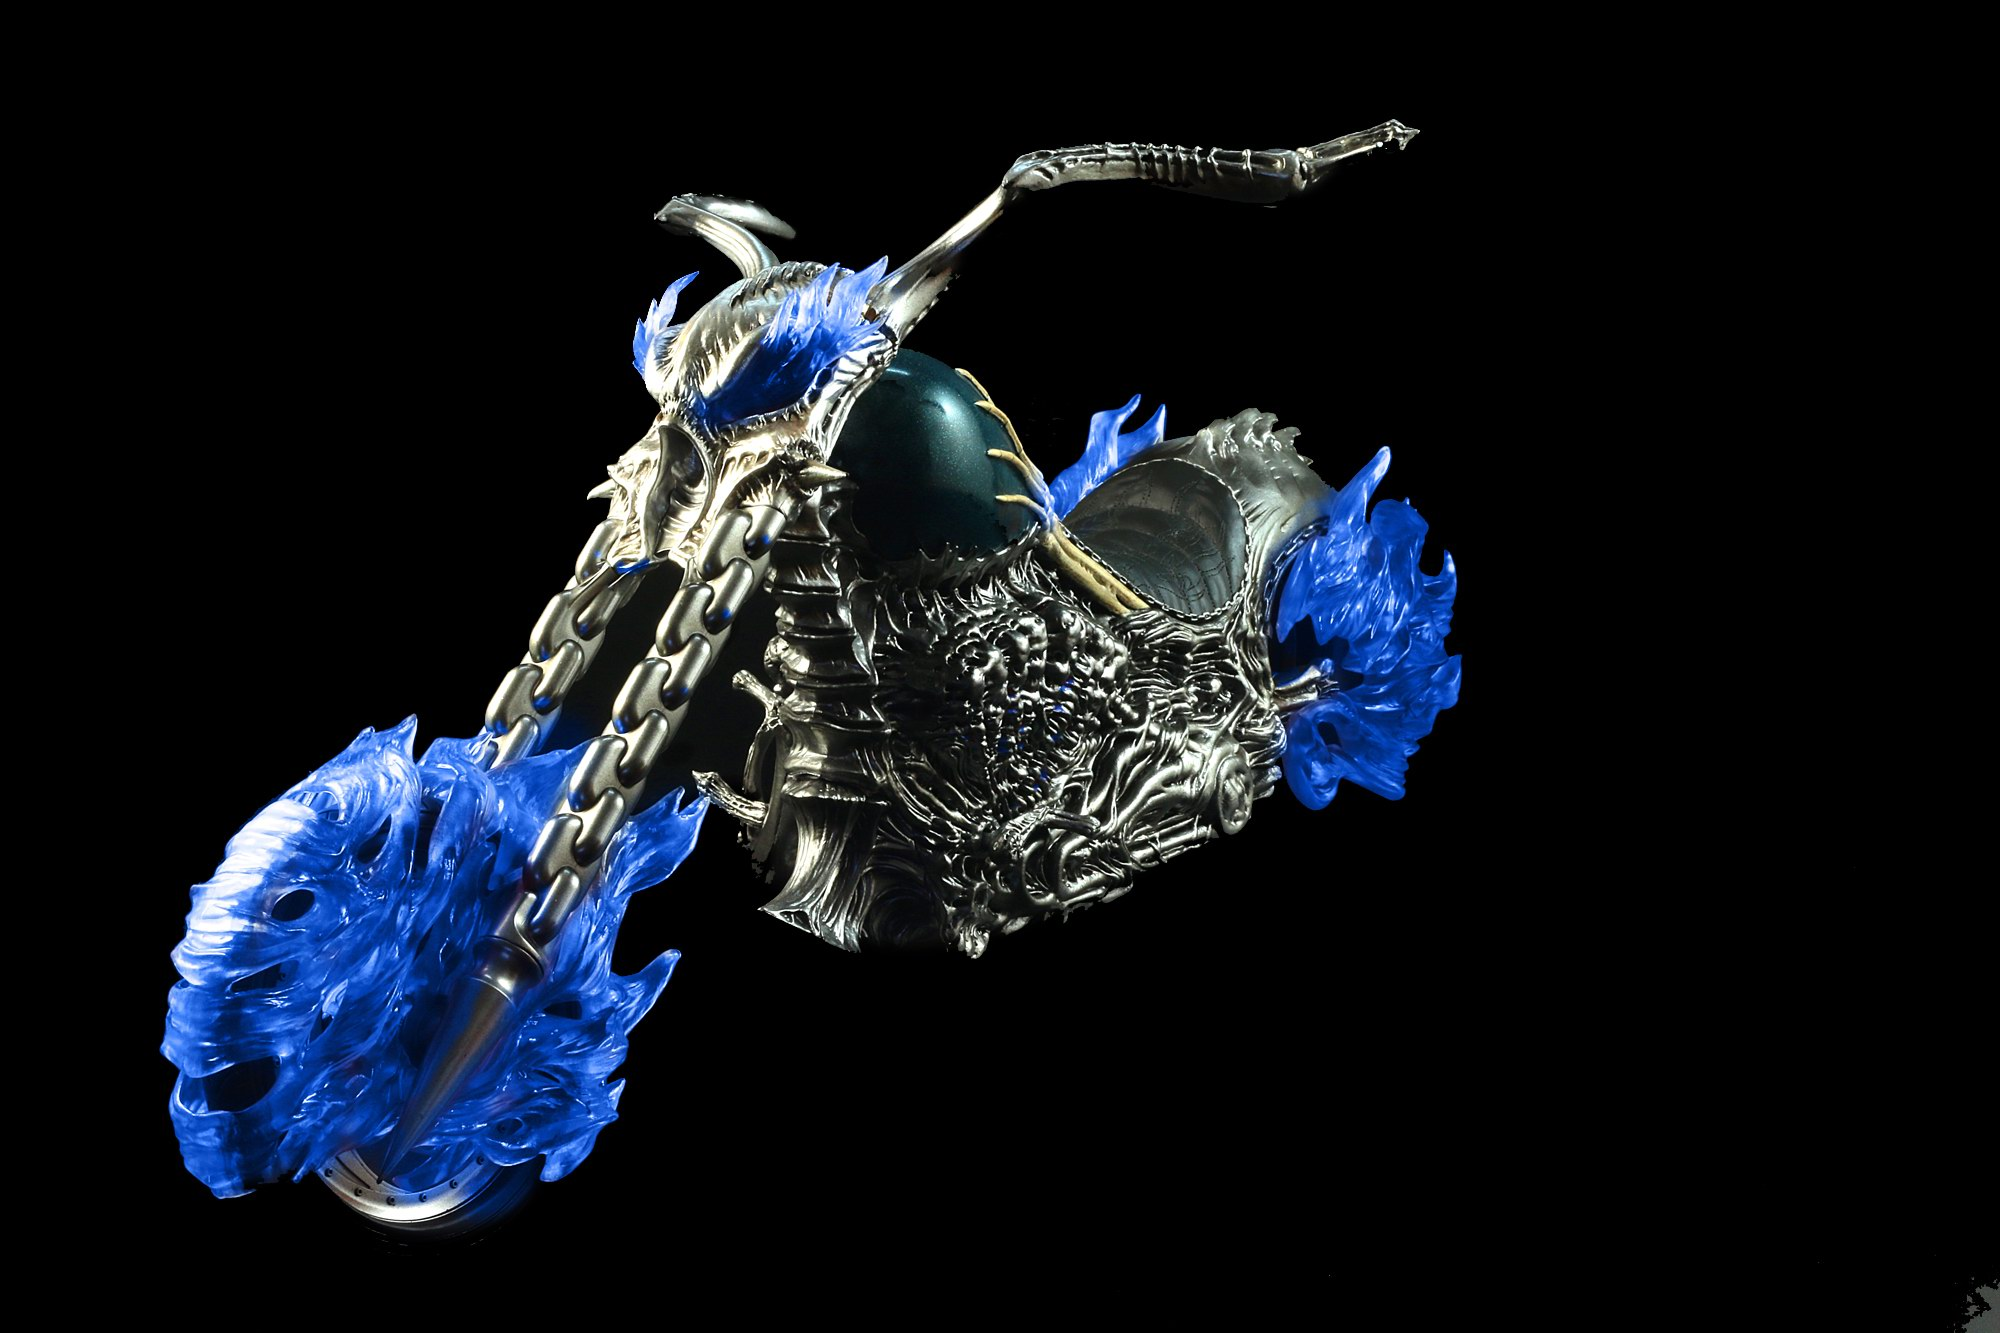 The Toys VF02 Ghost Rider Motorcycle (Lighting Ver.)